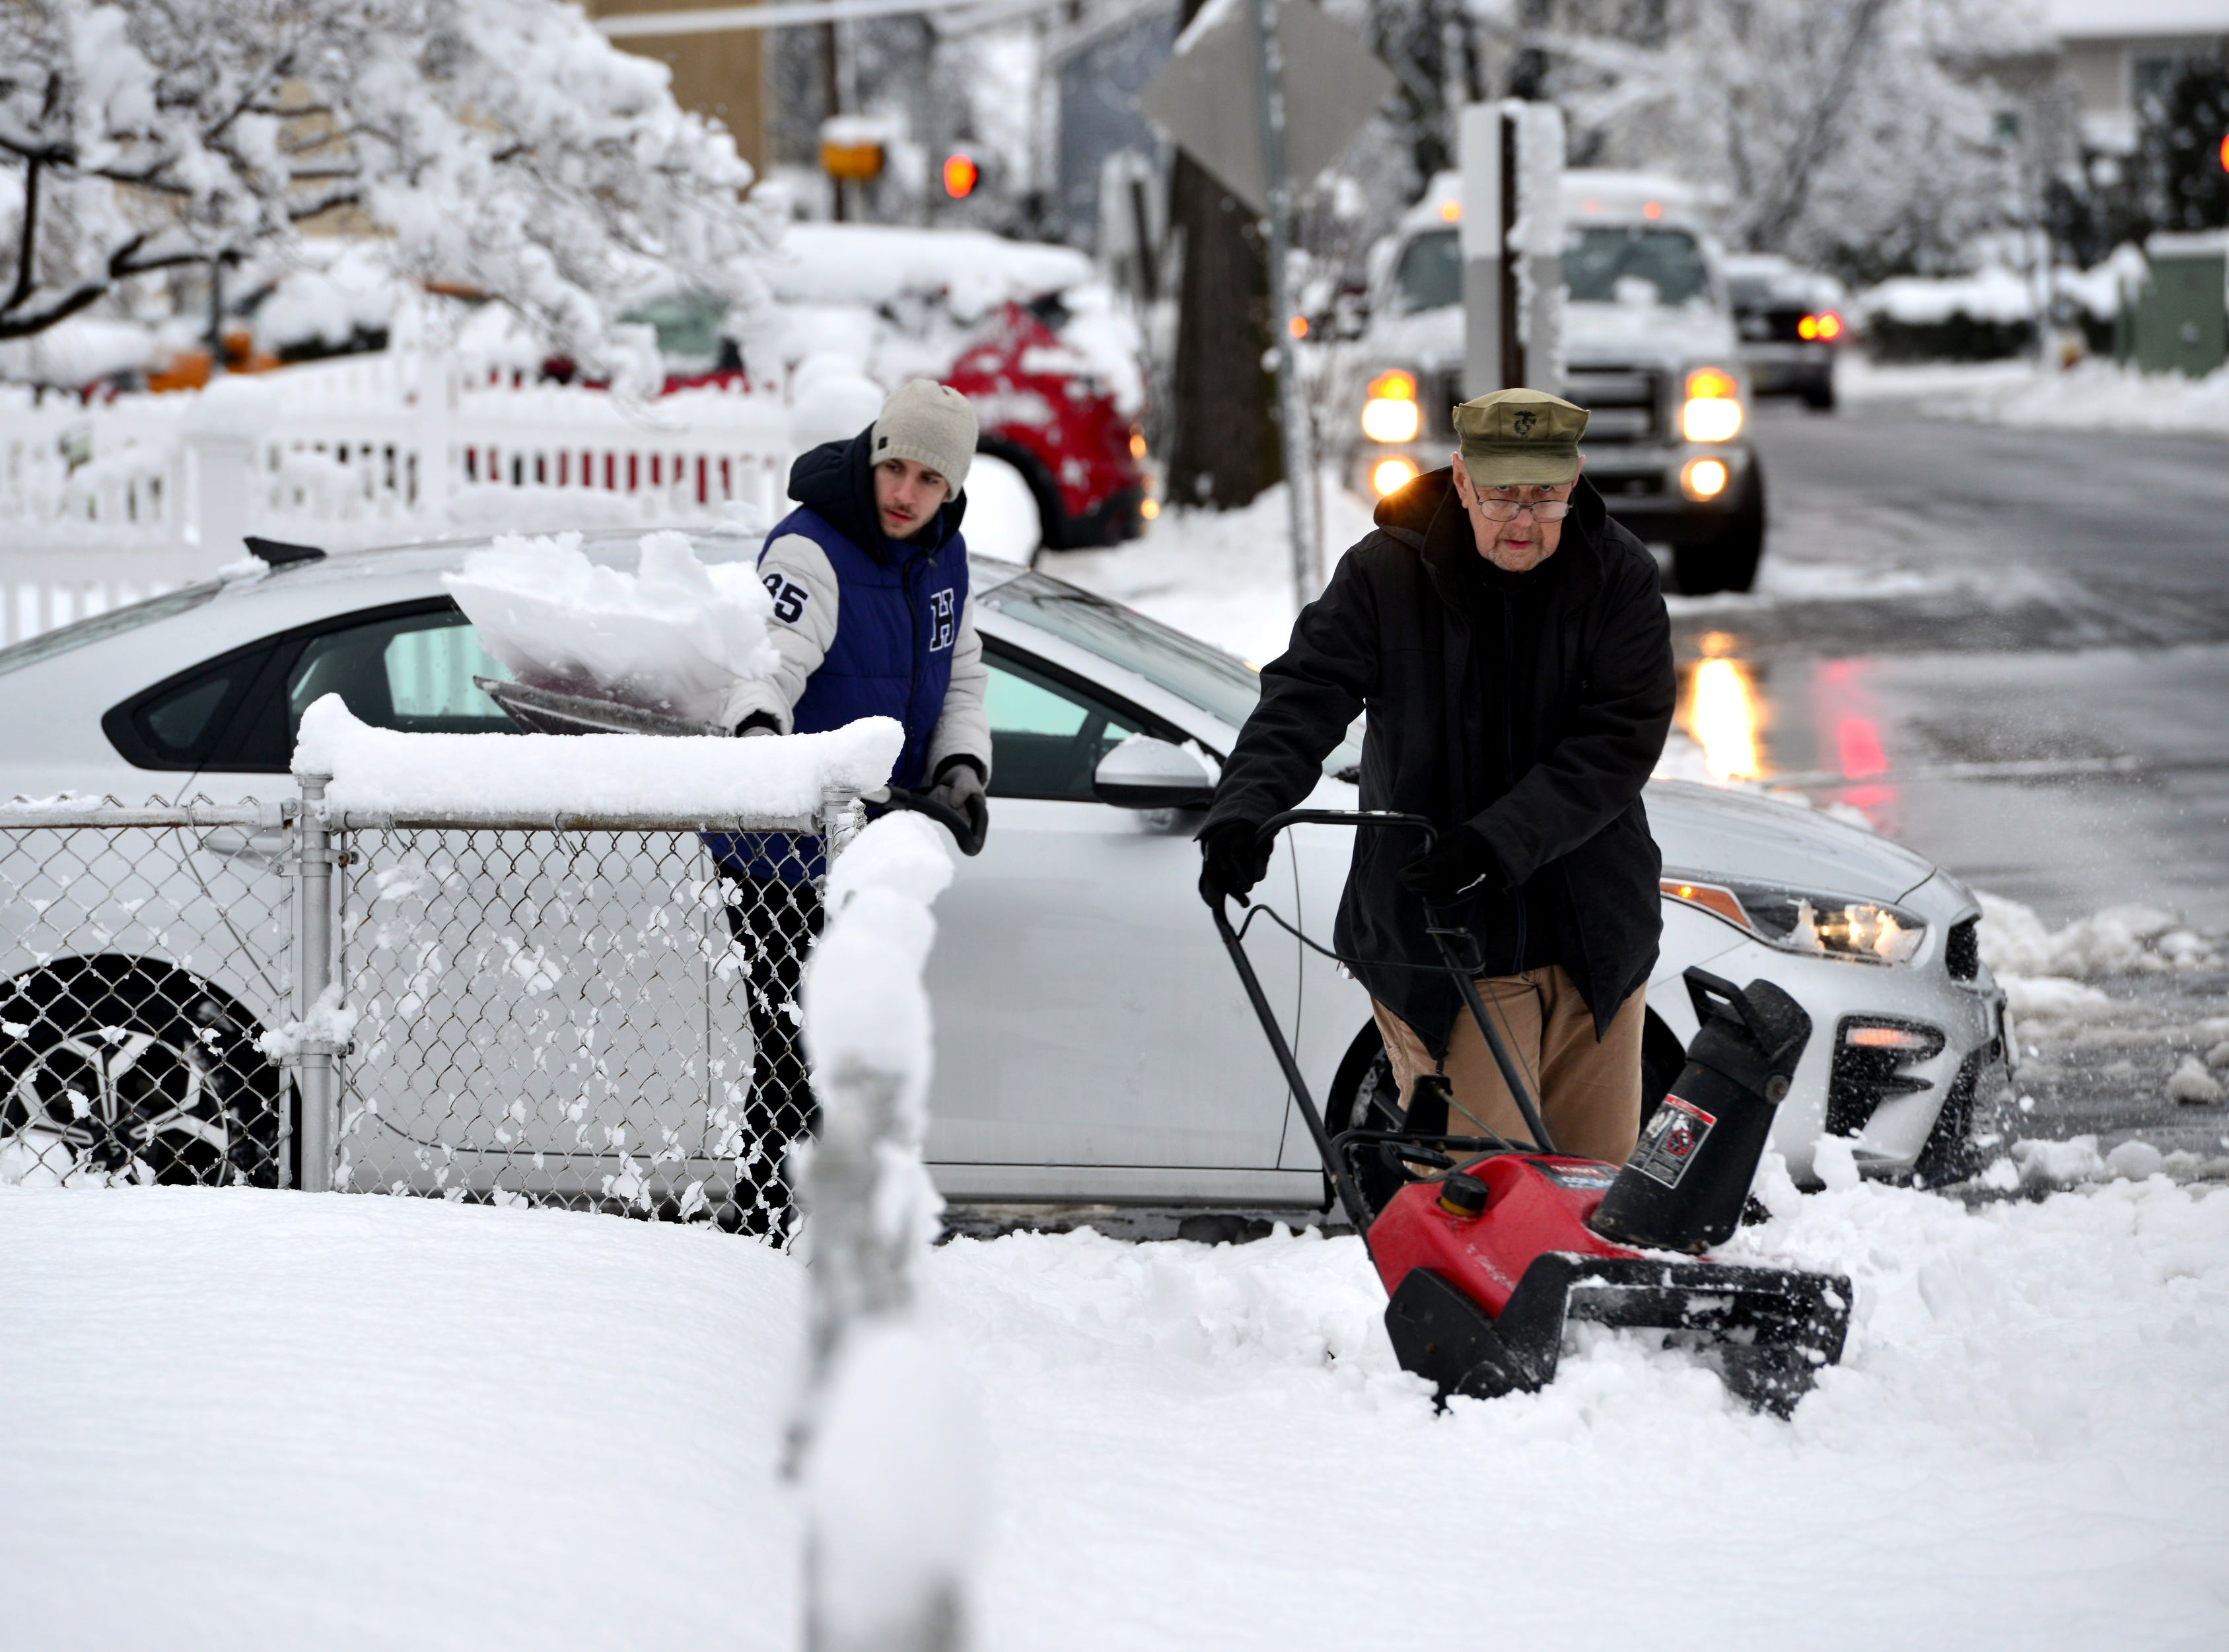 Bob Wilson uses a snowblower to clear the sidewalk in front of his home with the help of his grandson Brian Willson in North Arlington on Monday morning March 4, 2019.